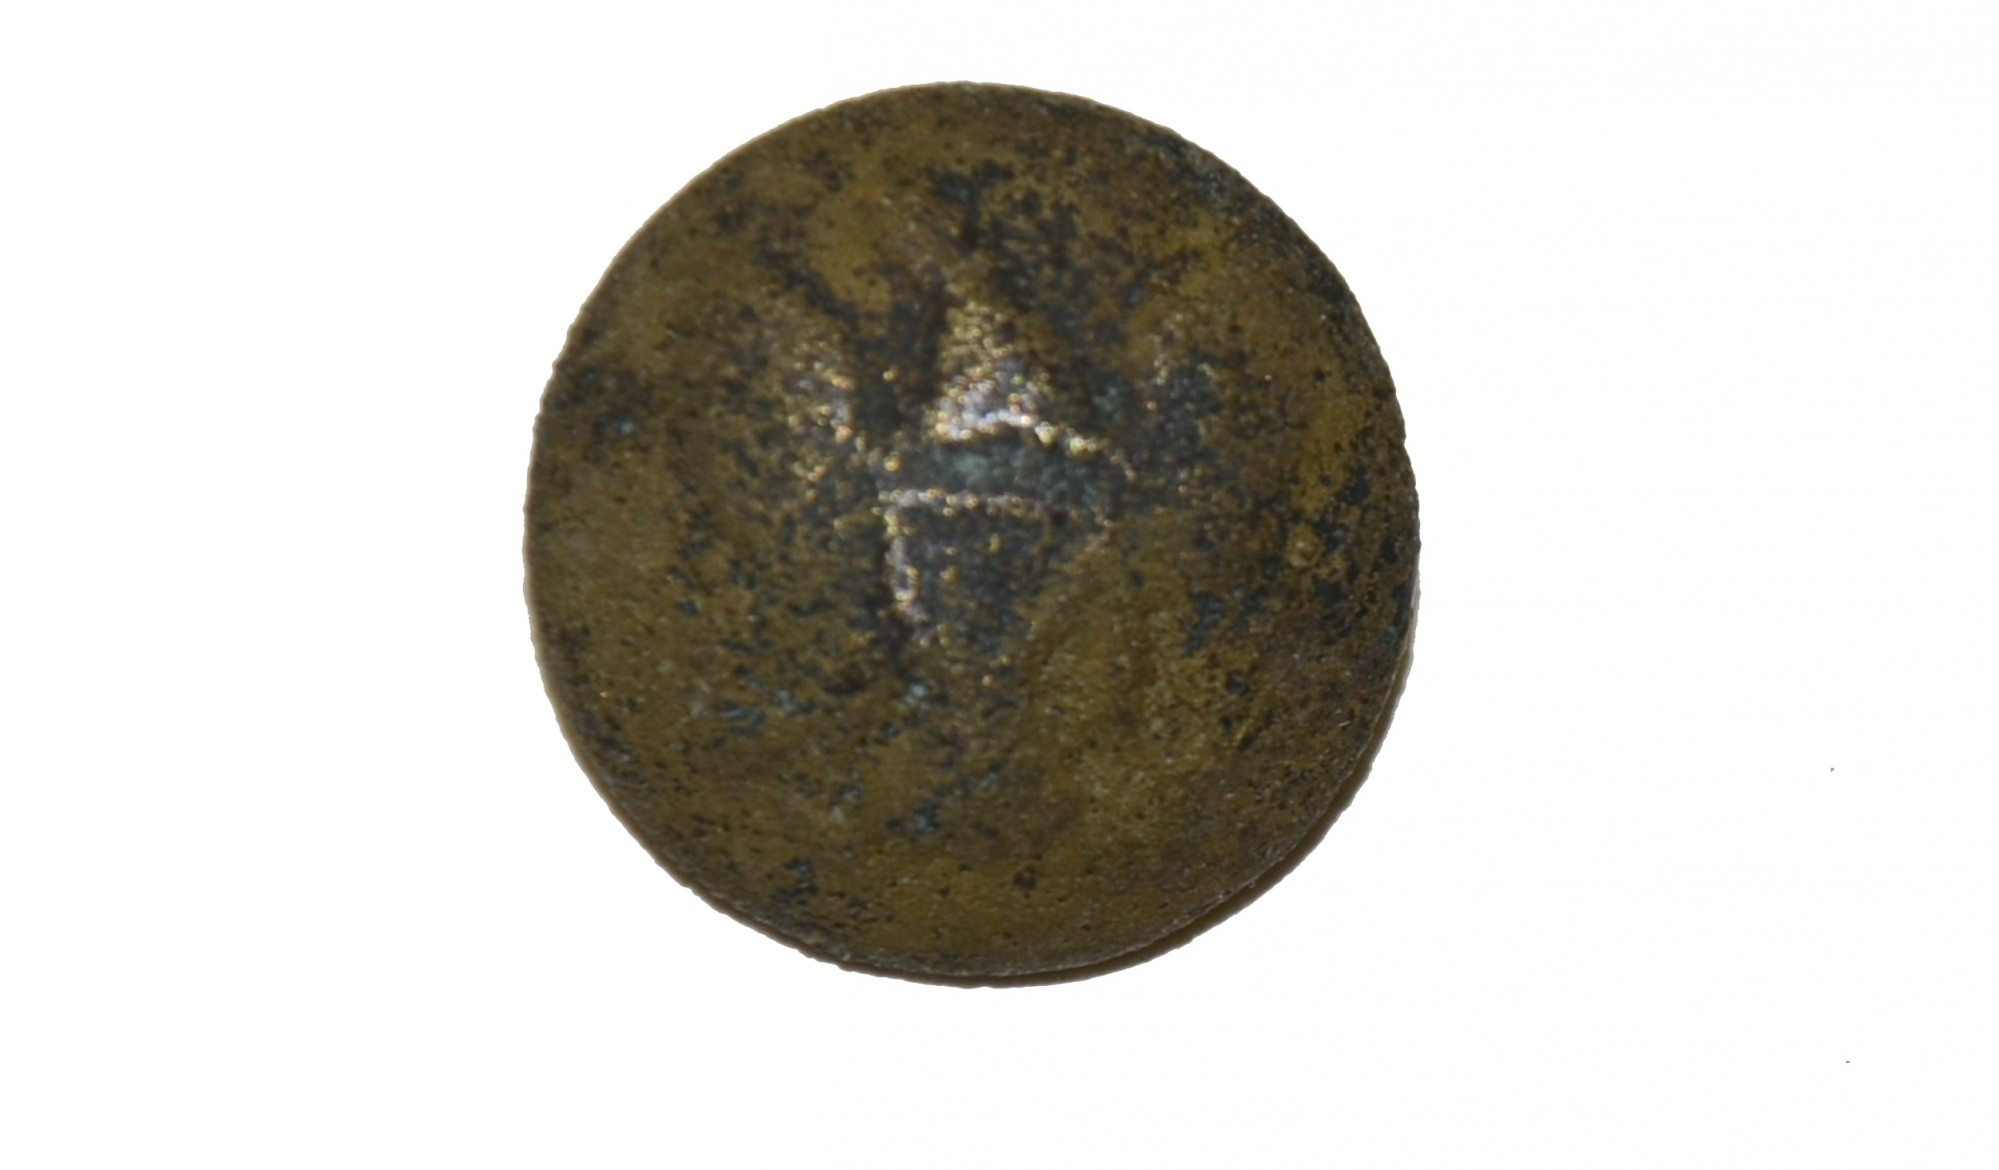 US GENERAL SERVICE EAGLE COAT BUTTON RECOVERED NEAR WILLOUGHBY RUN